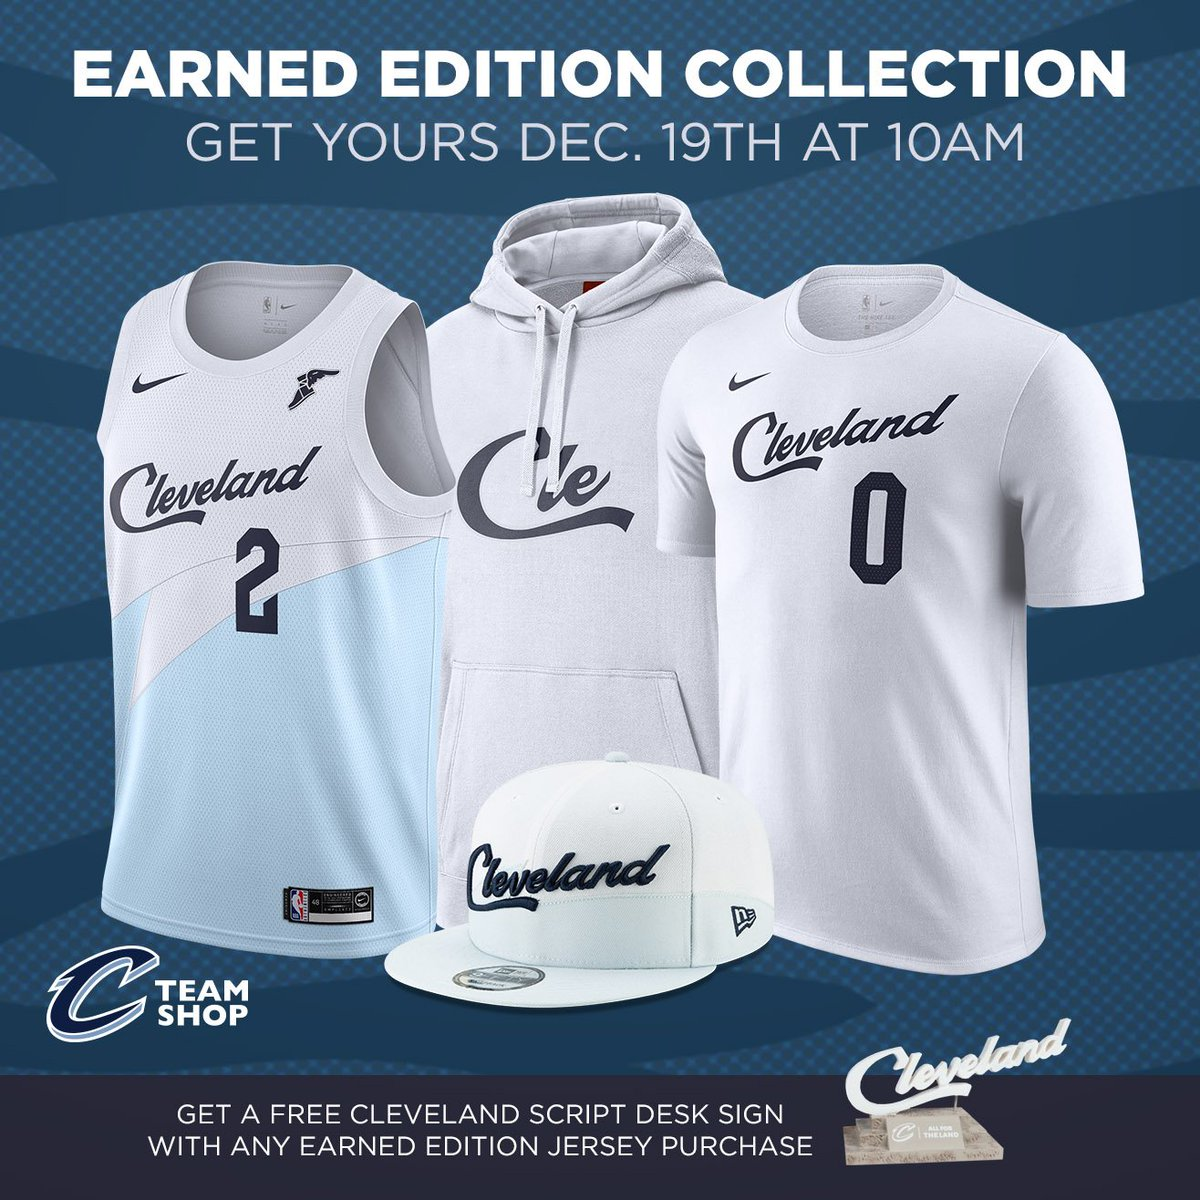 newest 23e53 cedd9 Cavaliers Team Shop on Twitter: